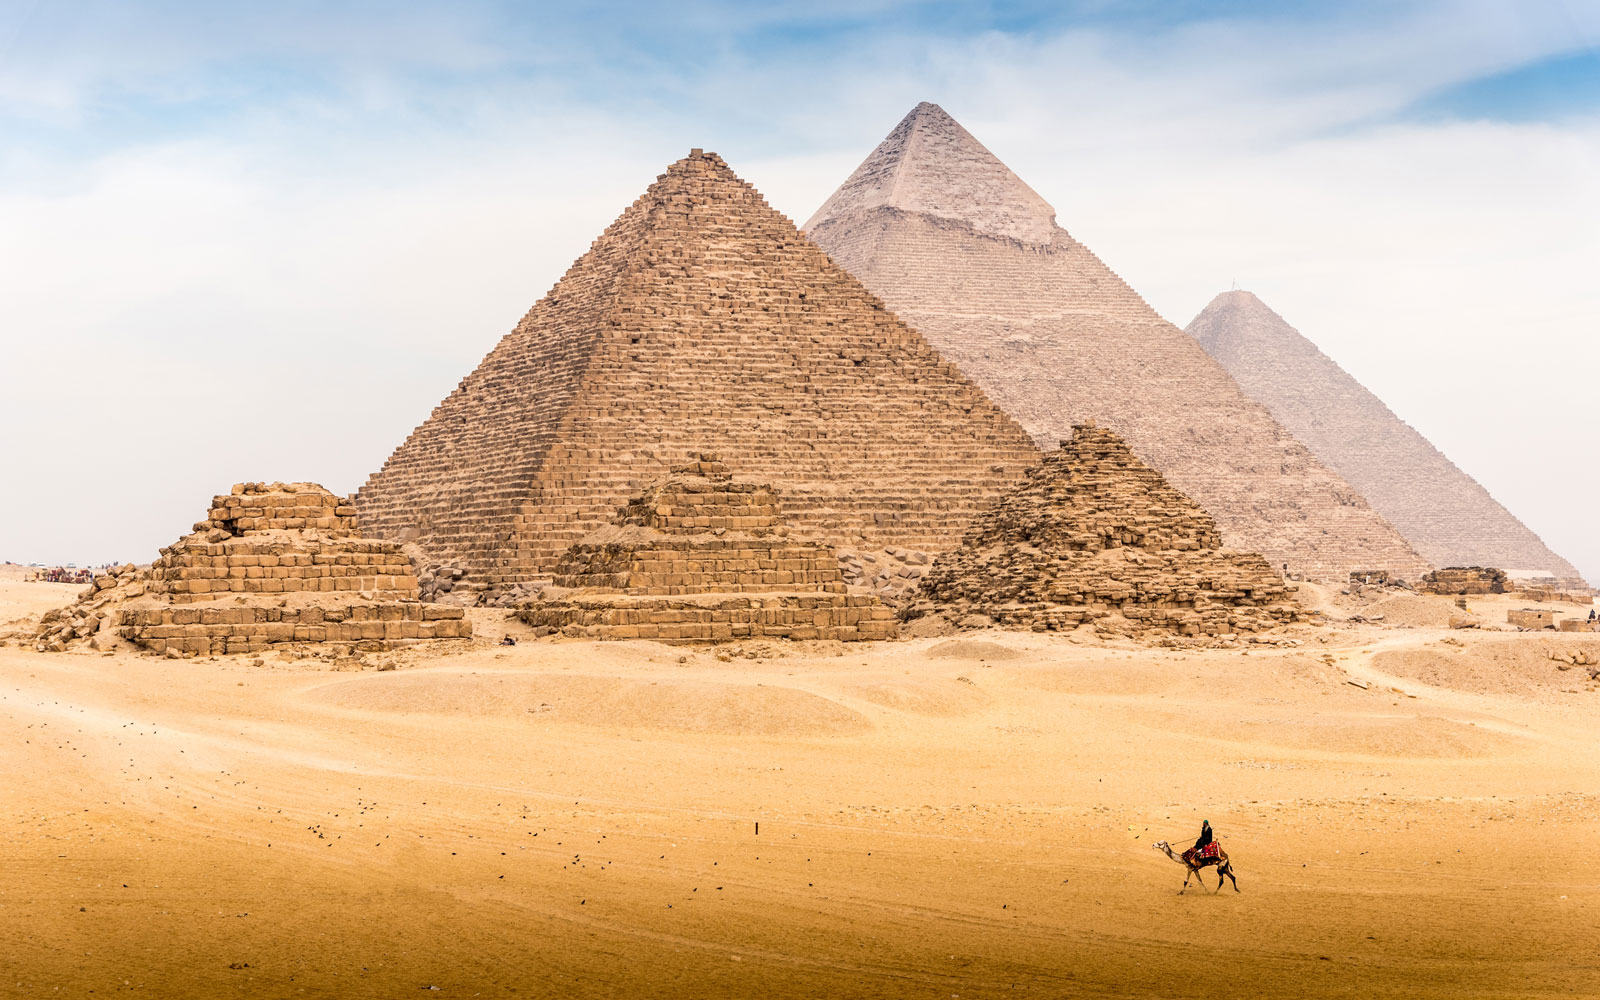 Archaeologists Just Unearthed an Ancient Egyptian Village Older Than the Great Pyramids of Giza